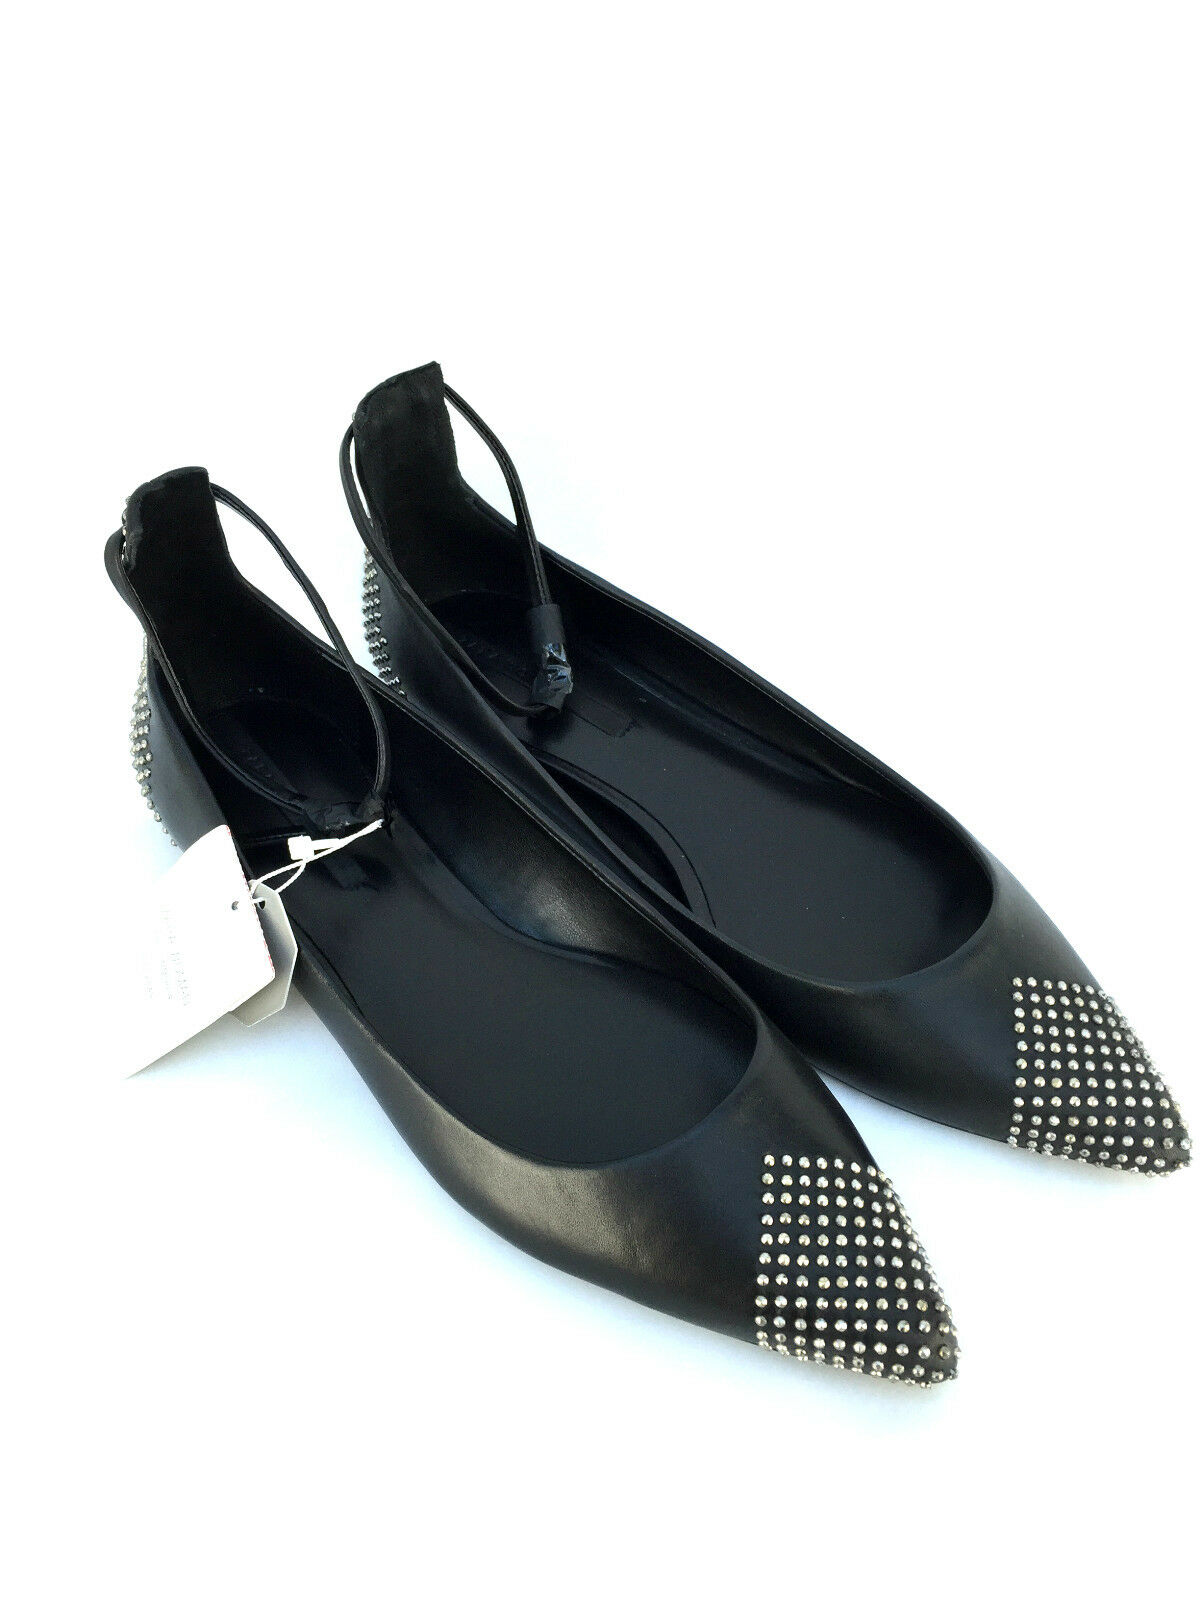 ZARA BLACK LEATHER STUDDED POINTED BALLERINAS FLATS SHOES SIZE RRP